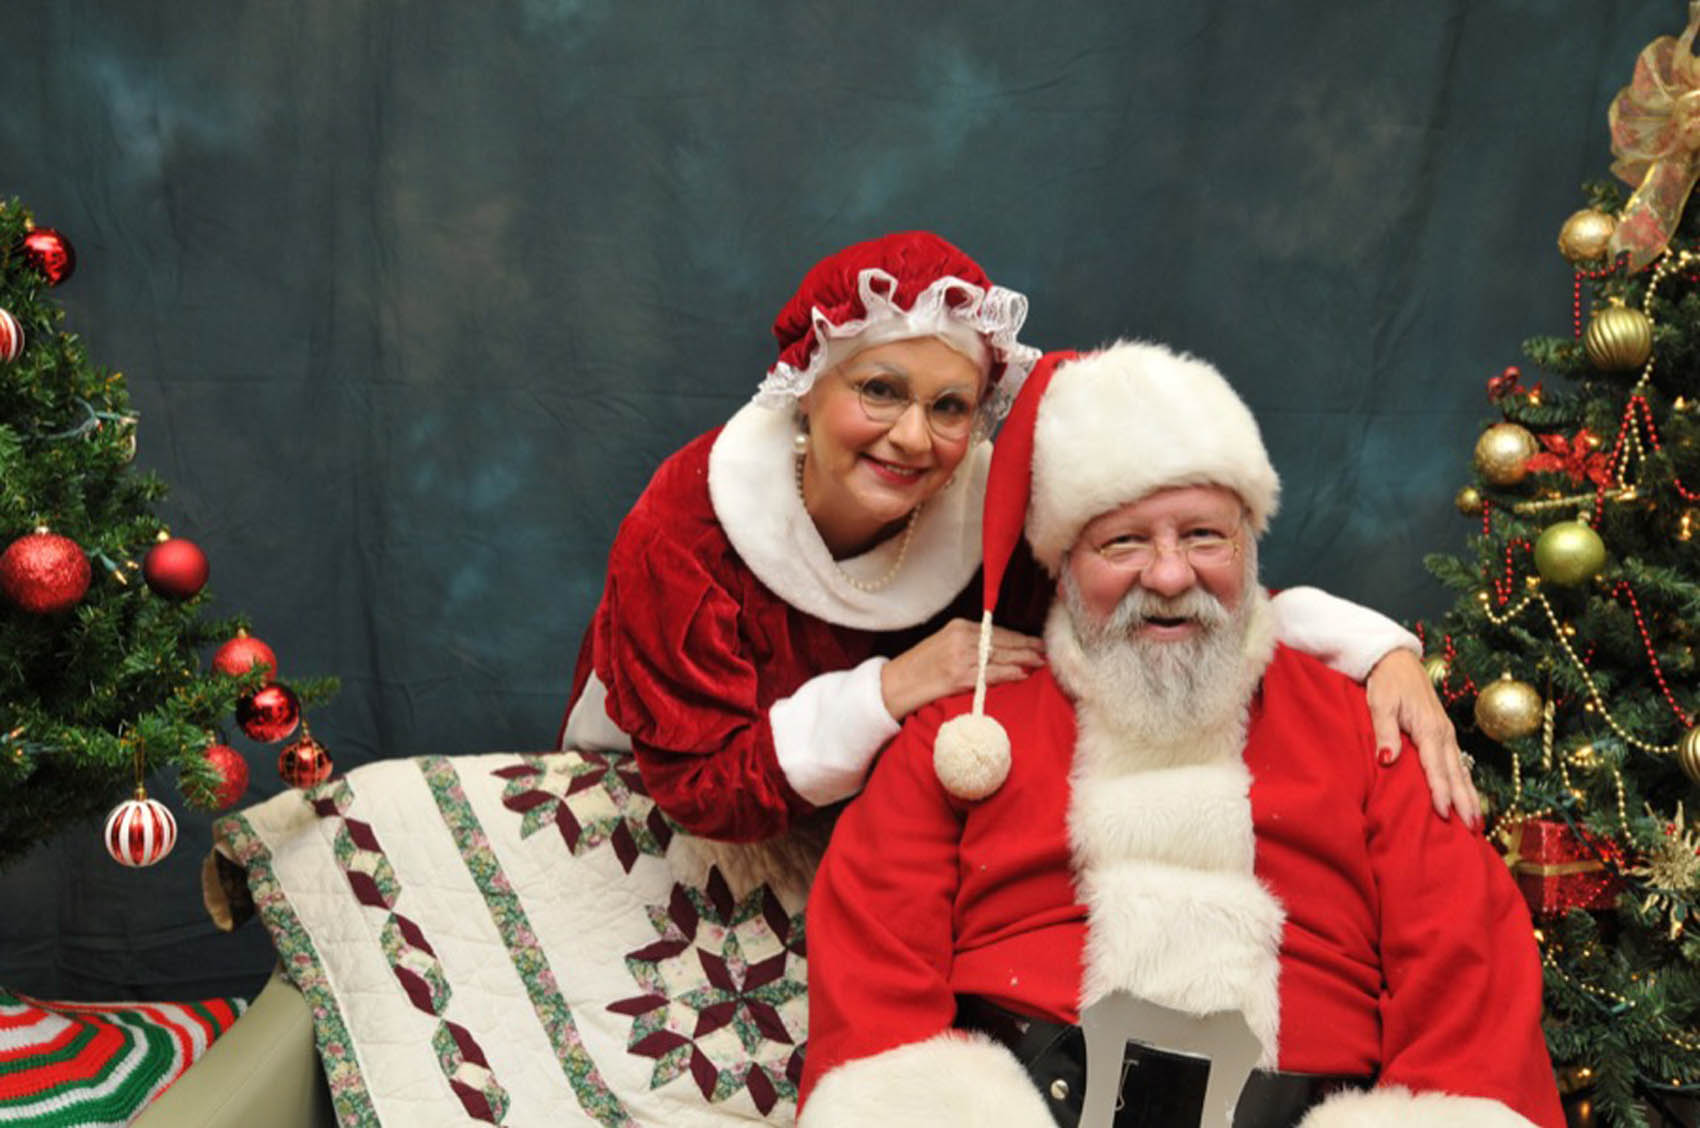 Read the full story, Santa invites all to CCCC Foundation's Christmas Tree Lighting in Sanford